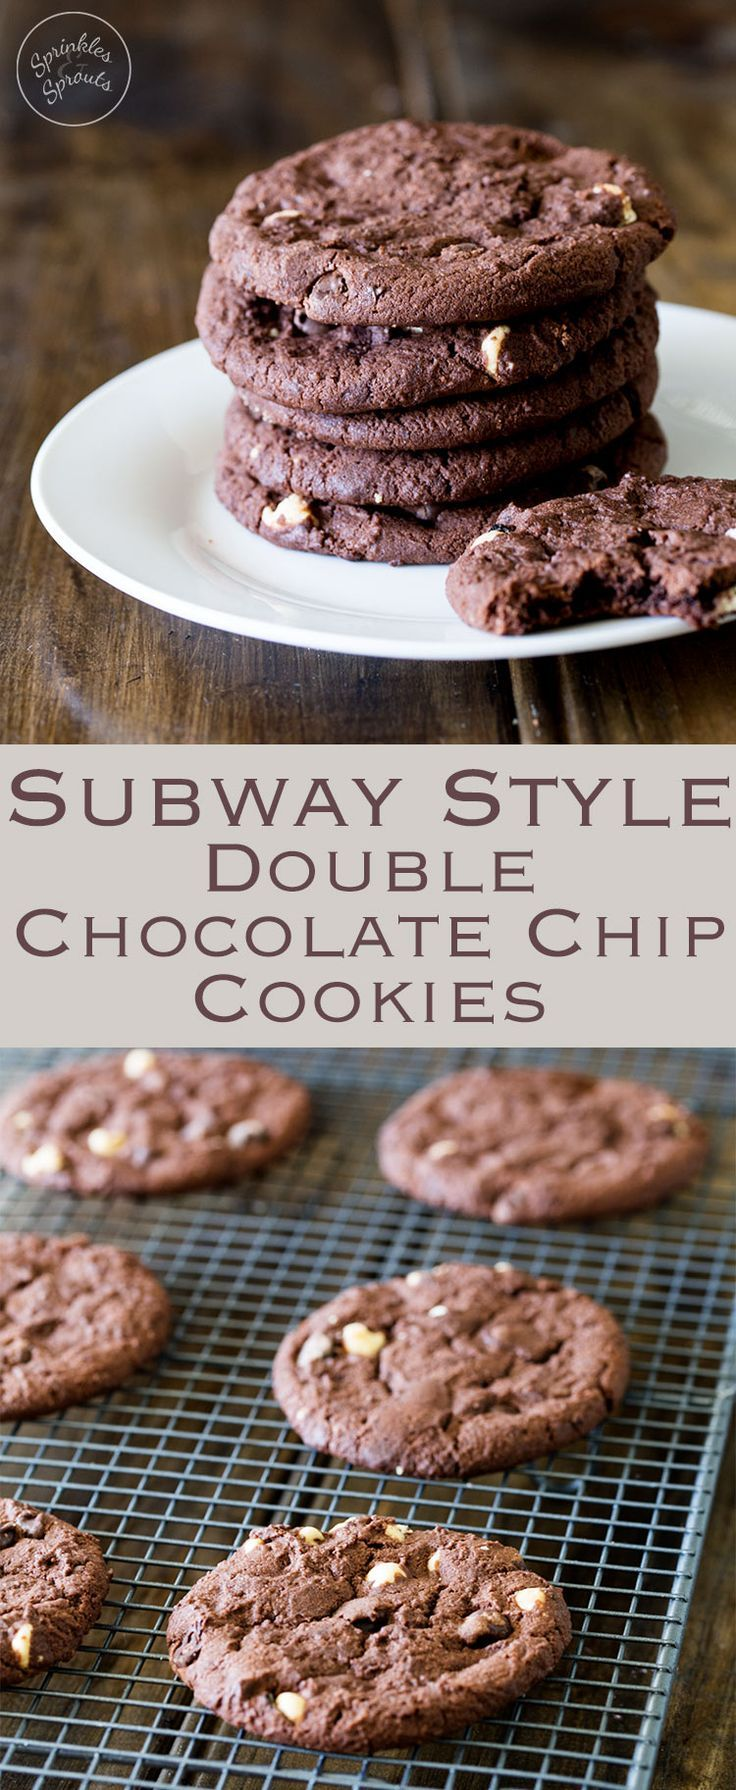 These subway style chocolate chip cookies are super chocolaty, super rich, super delicious and just super wonderful. They are beautifully soft, with a slight crisp edge, gooey in the middle and total worth every calorie!!! Recipe by Sprinkles and Sprouts | Delicious Food for Easy Entertaining